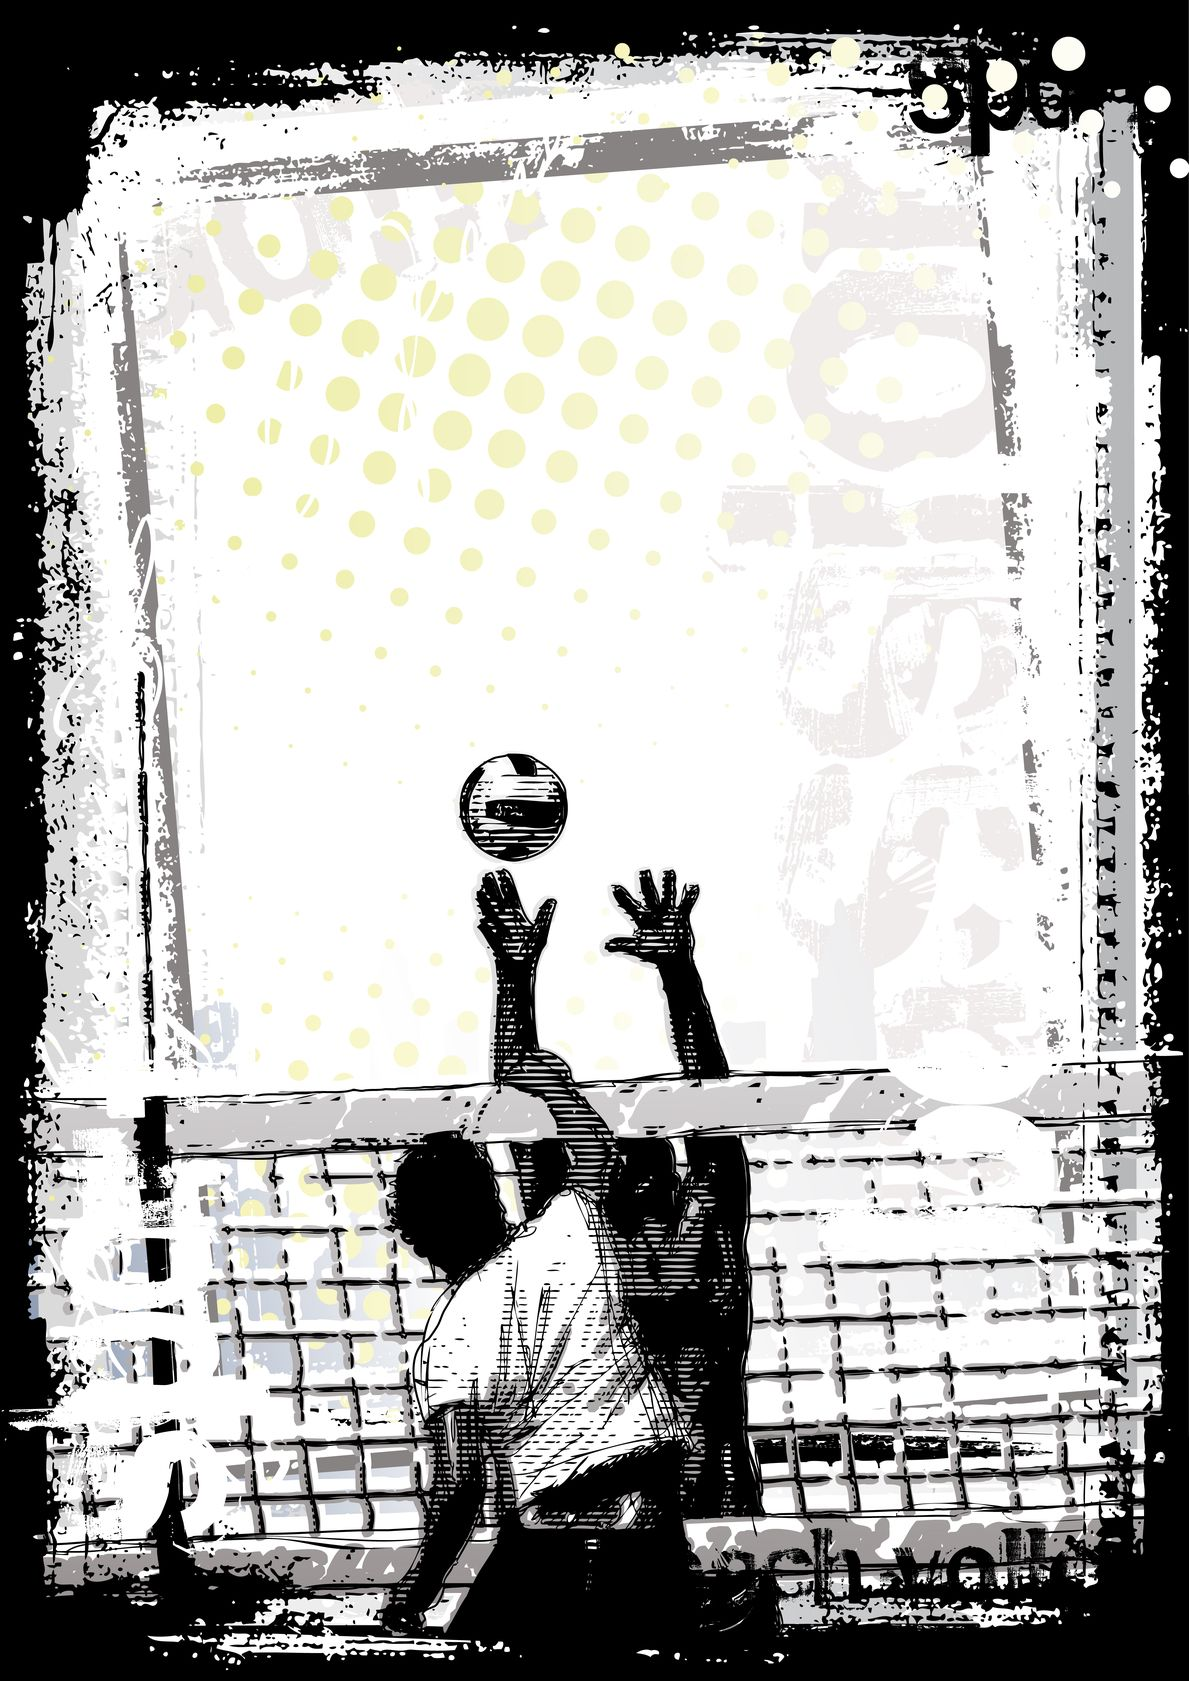 Beach Volleyball Poster Background Vector By Ranker666 Volleyball Posters Creative Poster Design Creative Posters